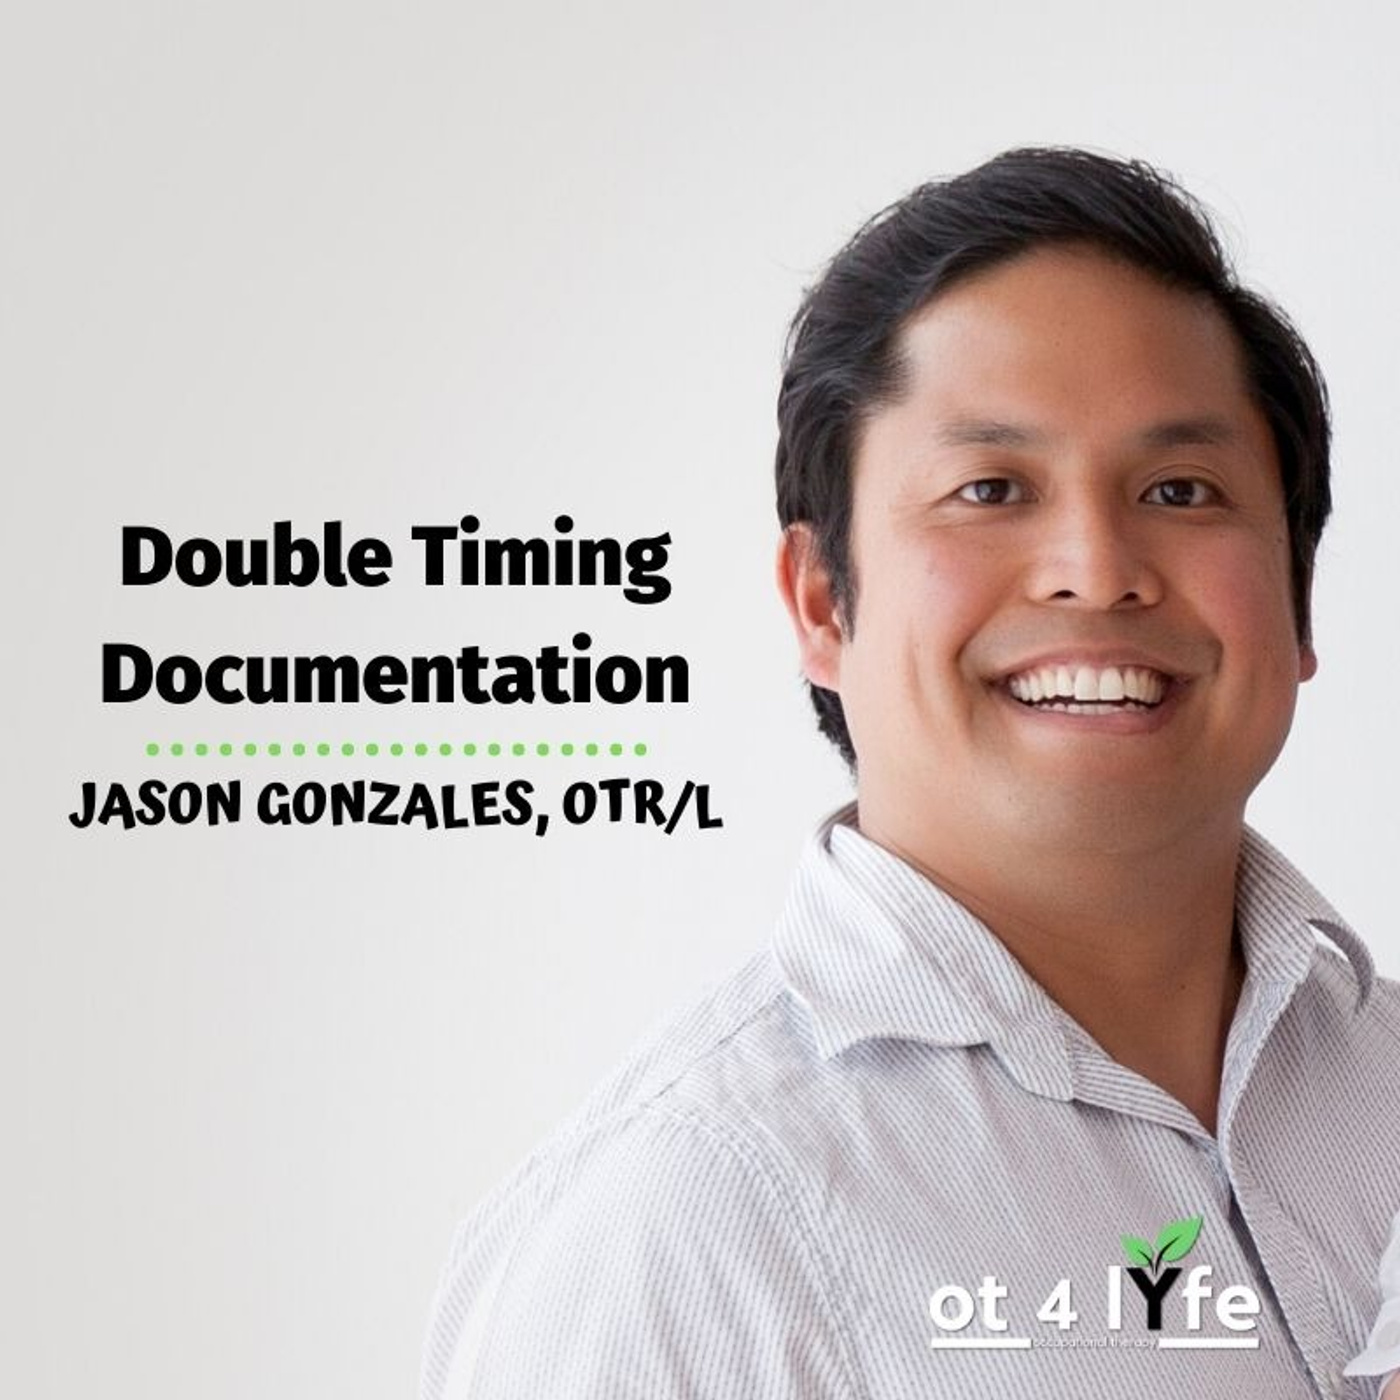 Double Timing Documentation with Jason Gonzales